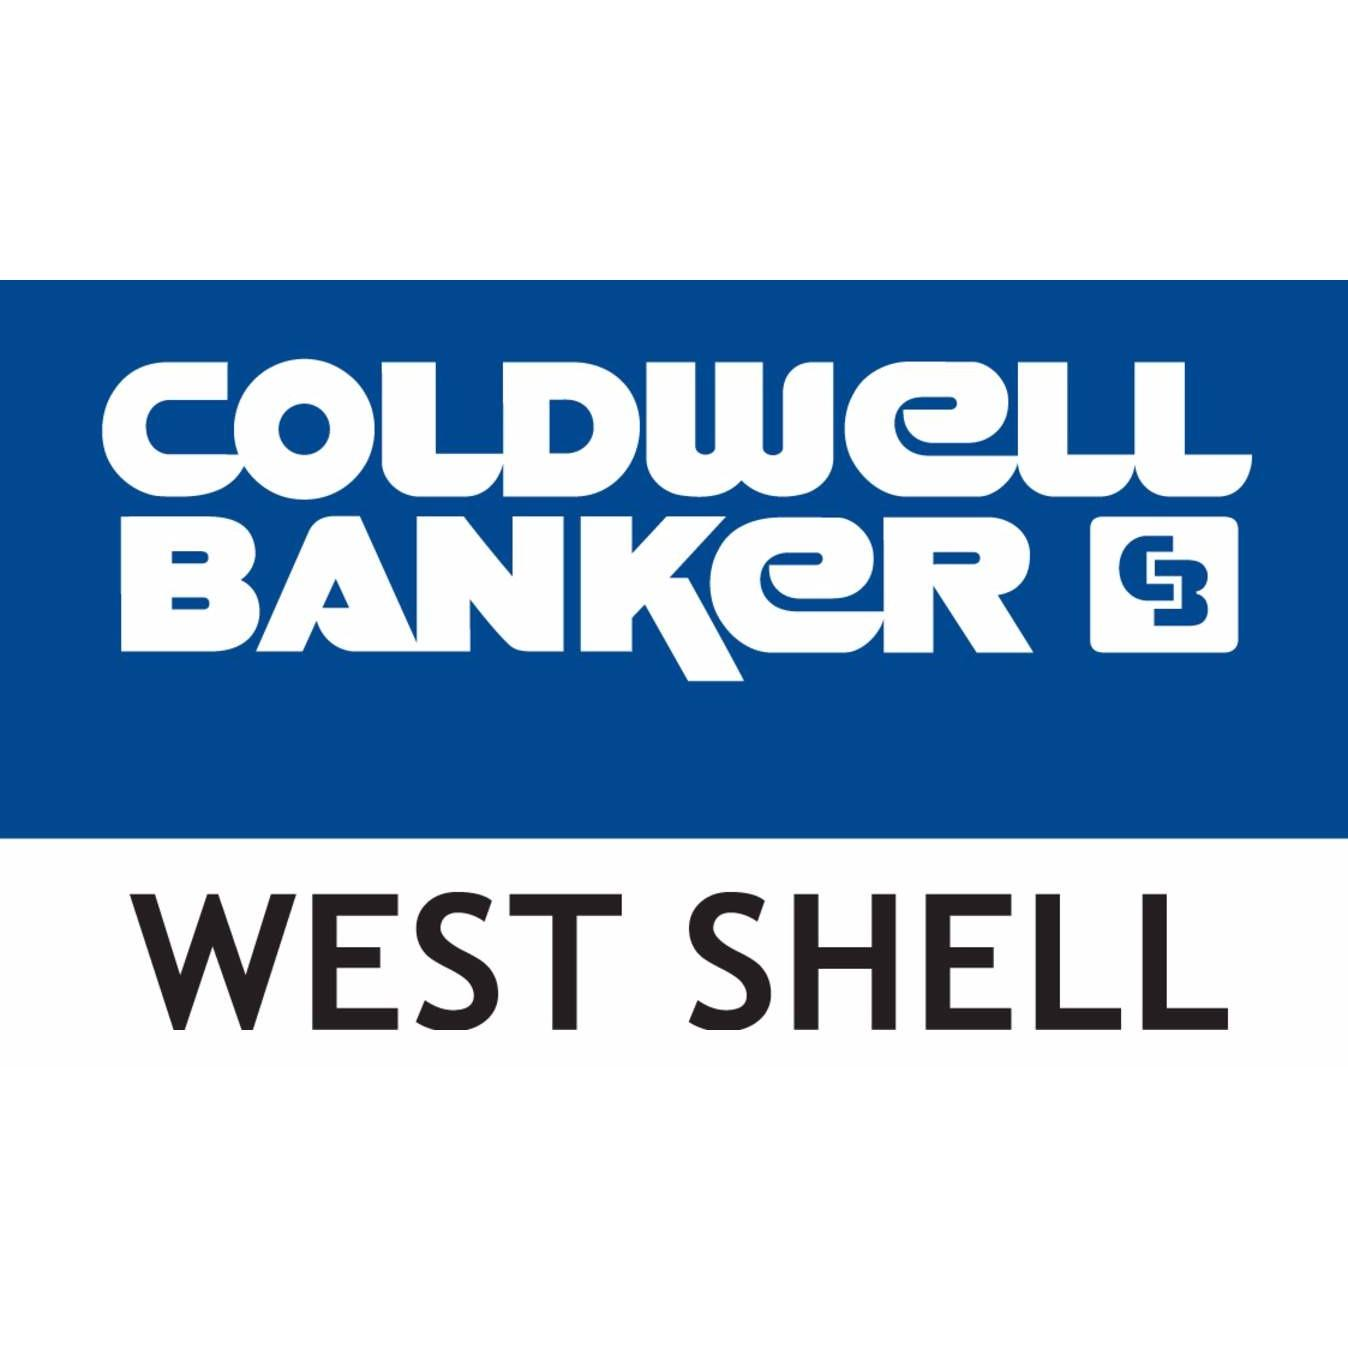 Drew and Ingrid | Coldwell Banker West Shell